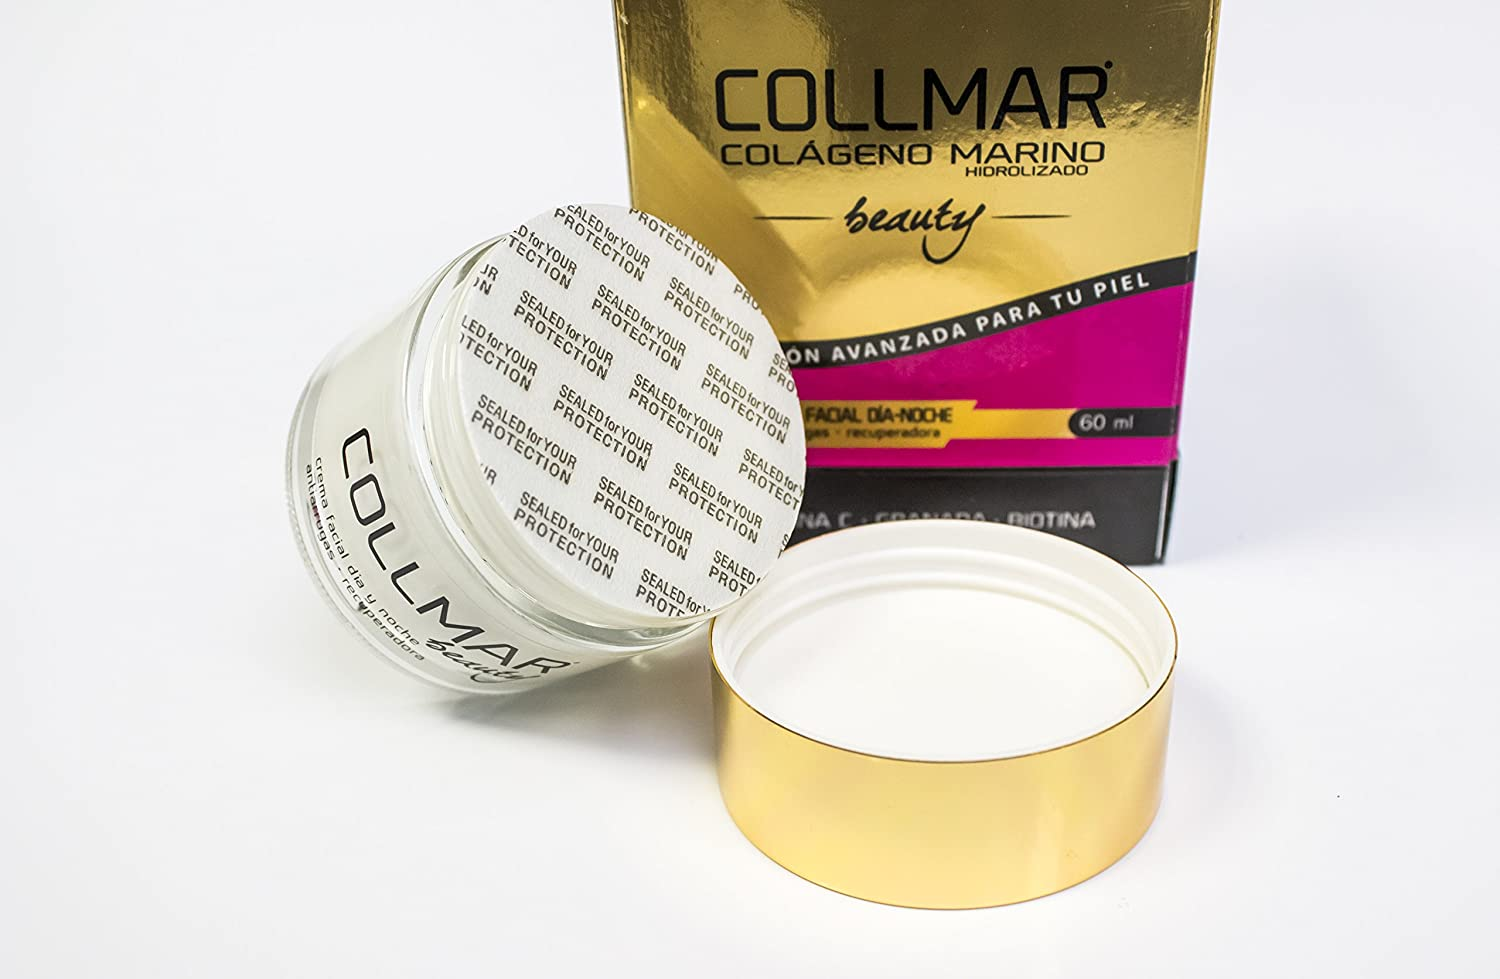 Amazon.com: COLLMAR Beauty Cream with Hydrolysed Marine Collagen, Hyaluronic Acid, Vitamin C, Biotin, Evening Primrose oil, Borage oil and Pomegranate 60 ml ...